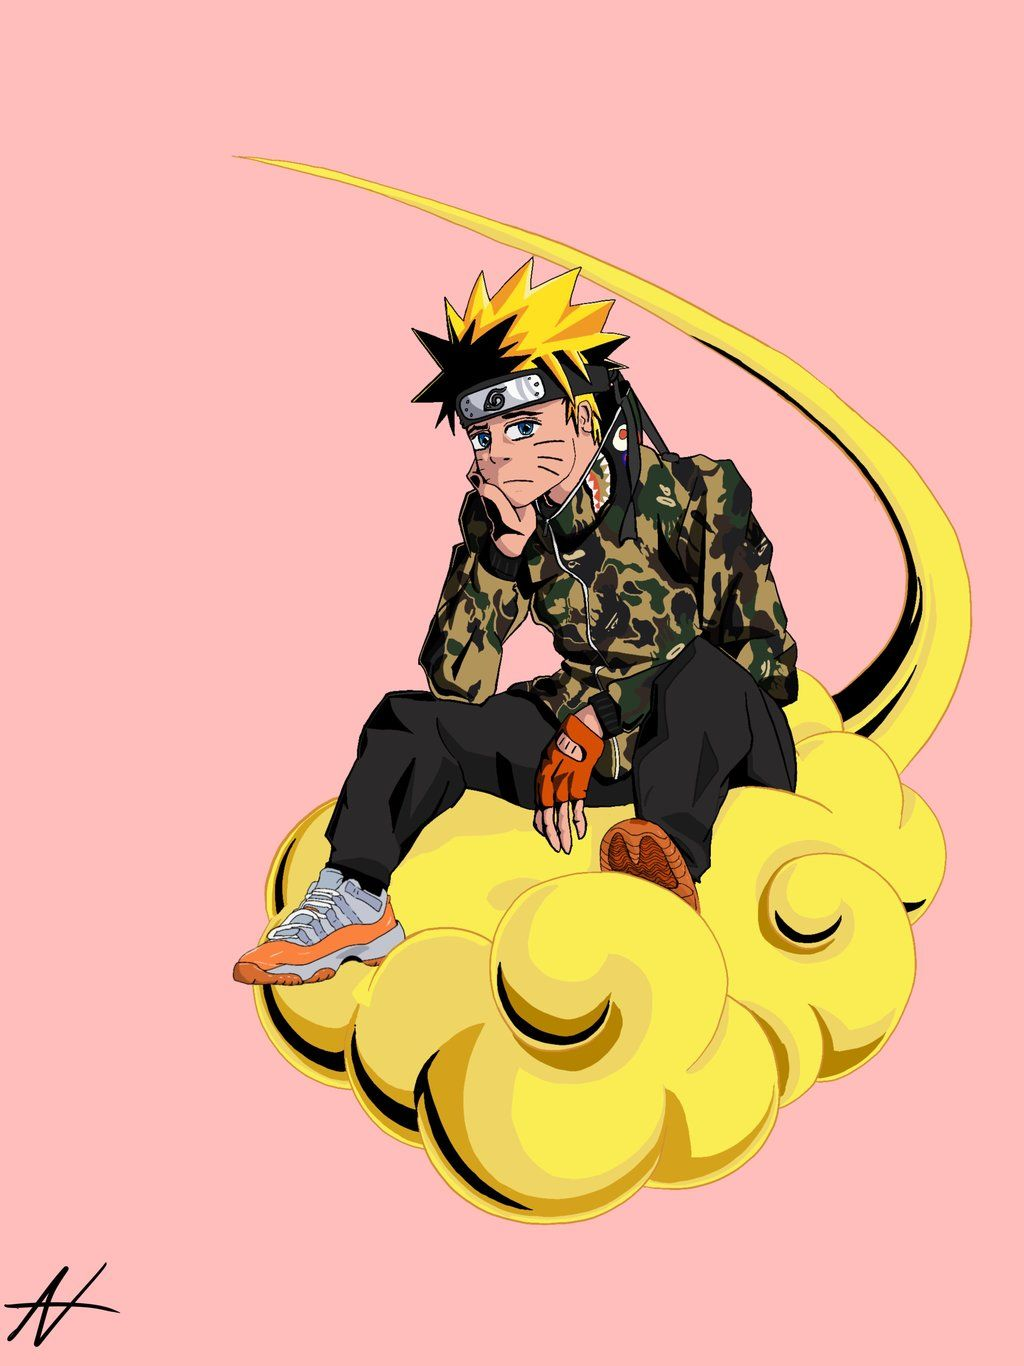 Pin By Zen On Anime X Urban Art X Comics Anime Wallpaper Naruto